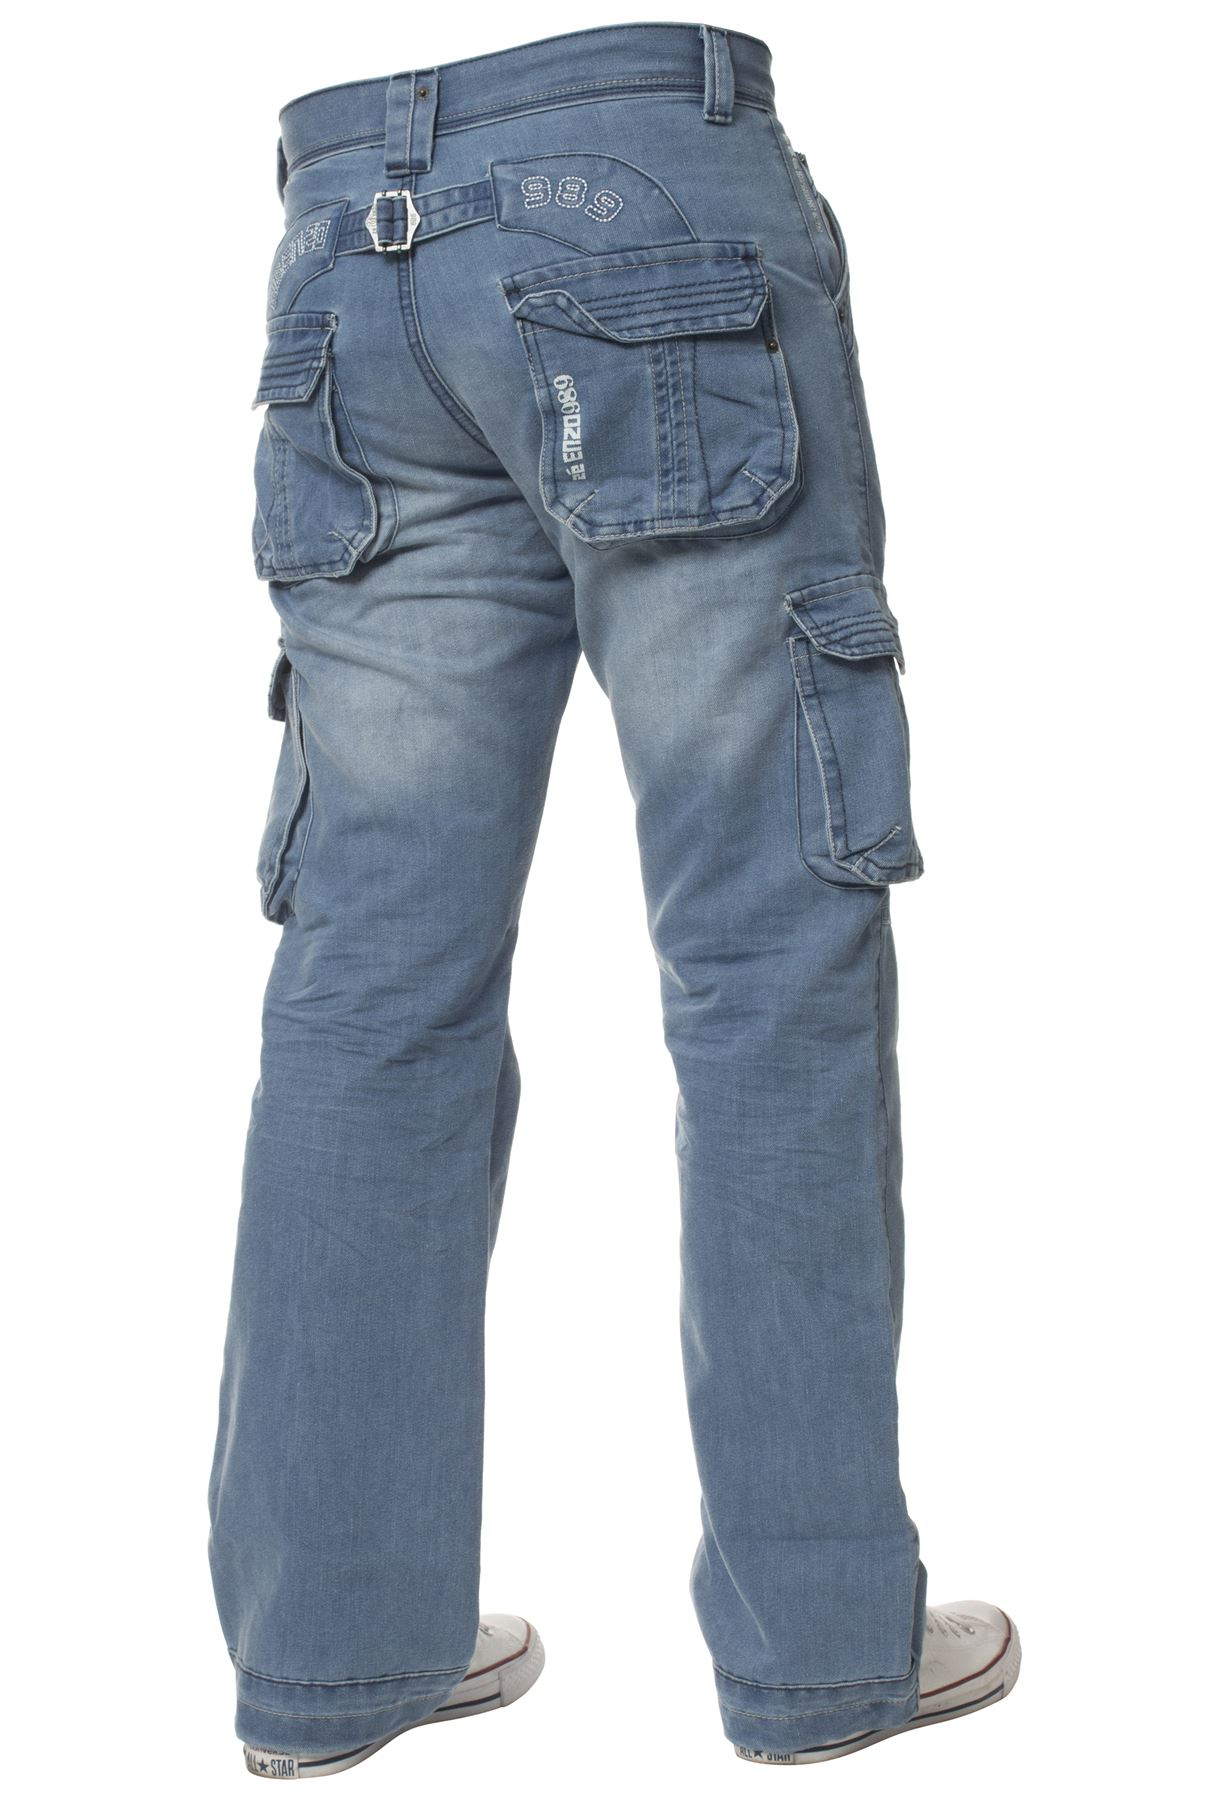 Enzo-Mens-Cargo-Combat-Trousers-Jeans-Work-Casual-Denim-Pants-Big-Tall-All-Waist thumbnail 14